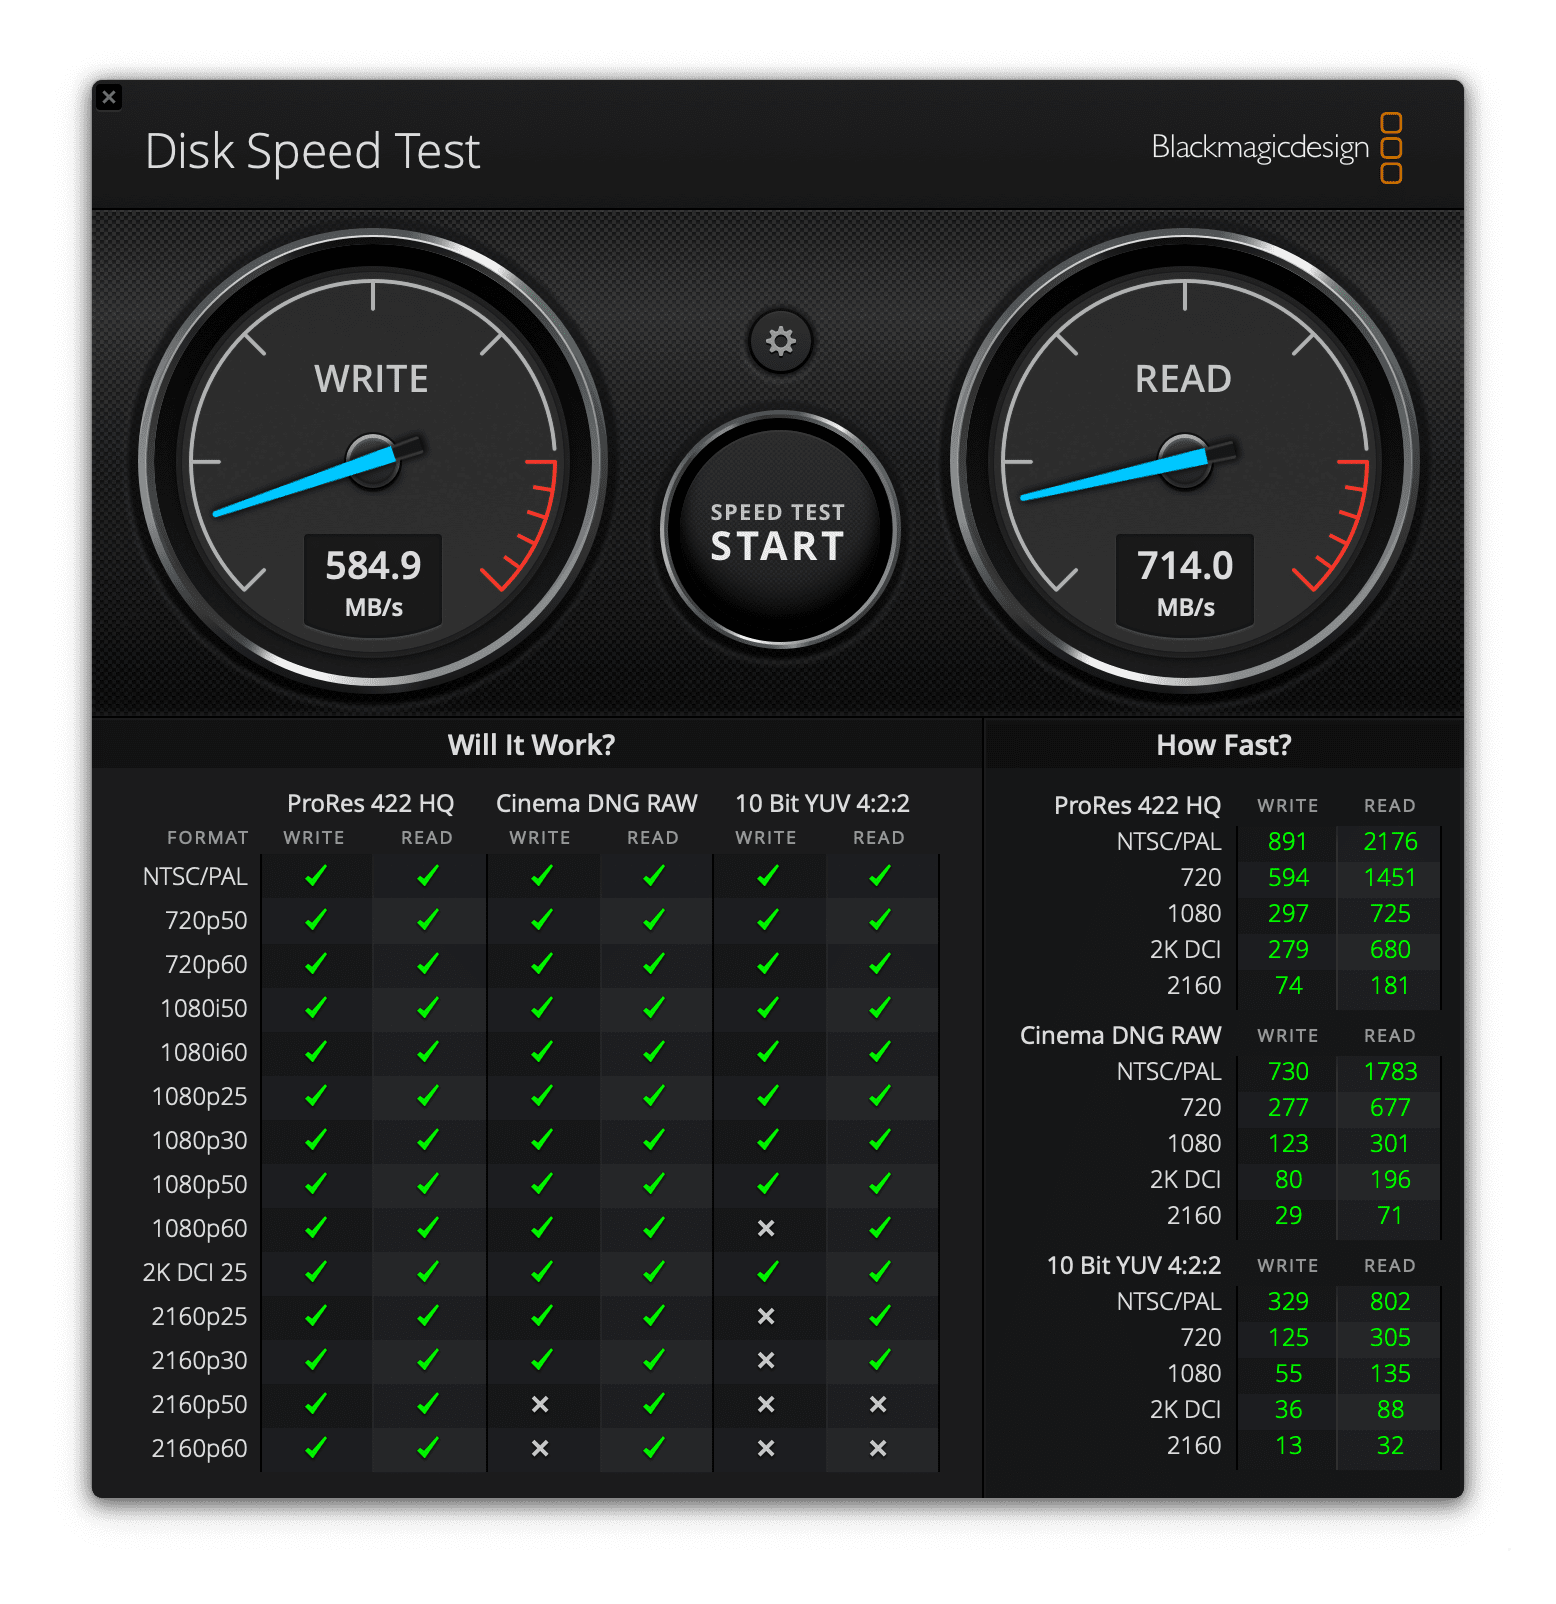 Les performances de débit du SSD interne du MacBook Pro 15 pouces